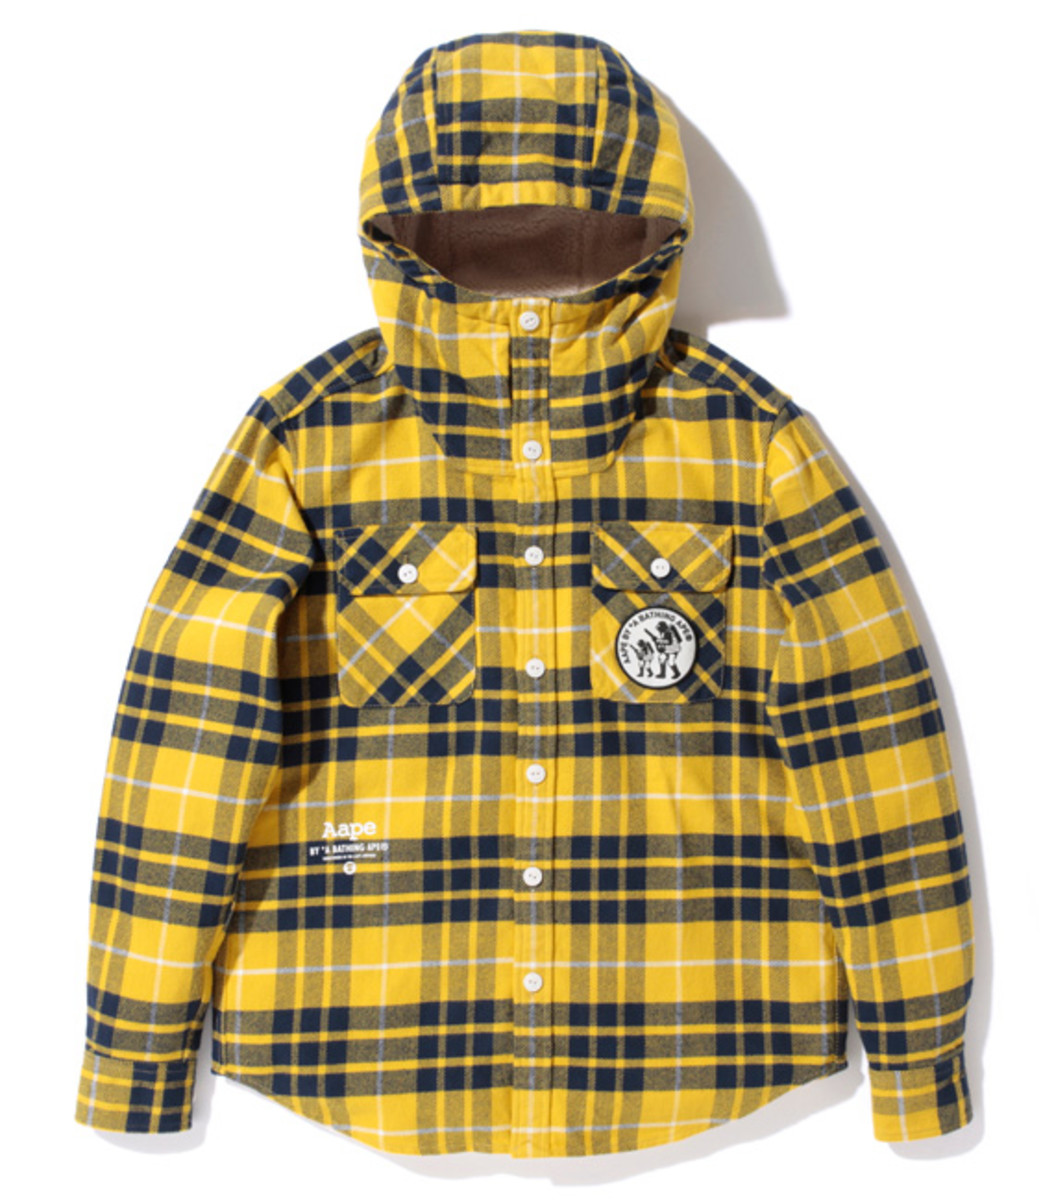 aape-hooded-fleece-check-shirt-01